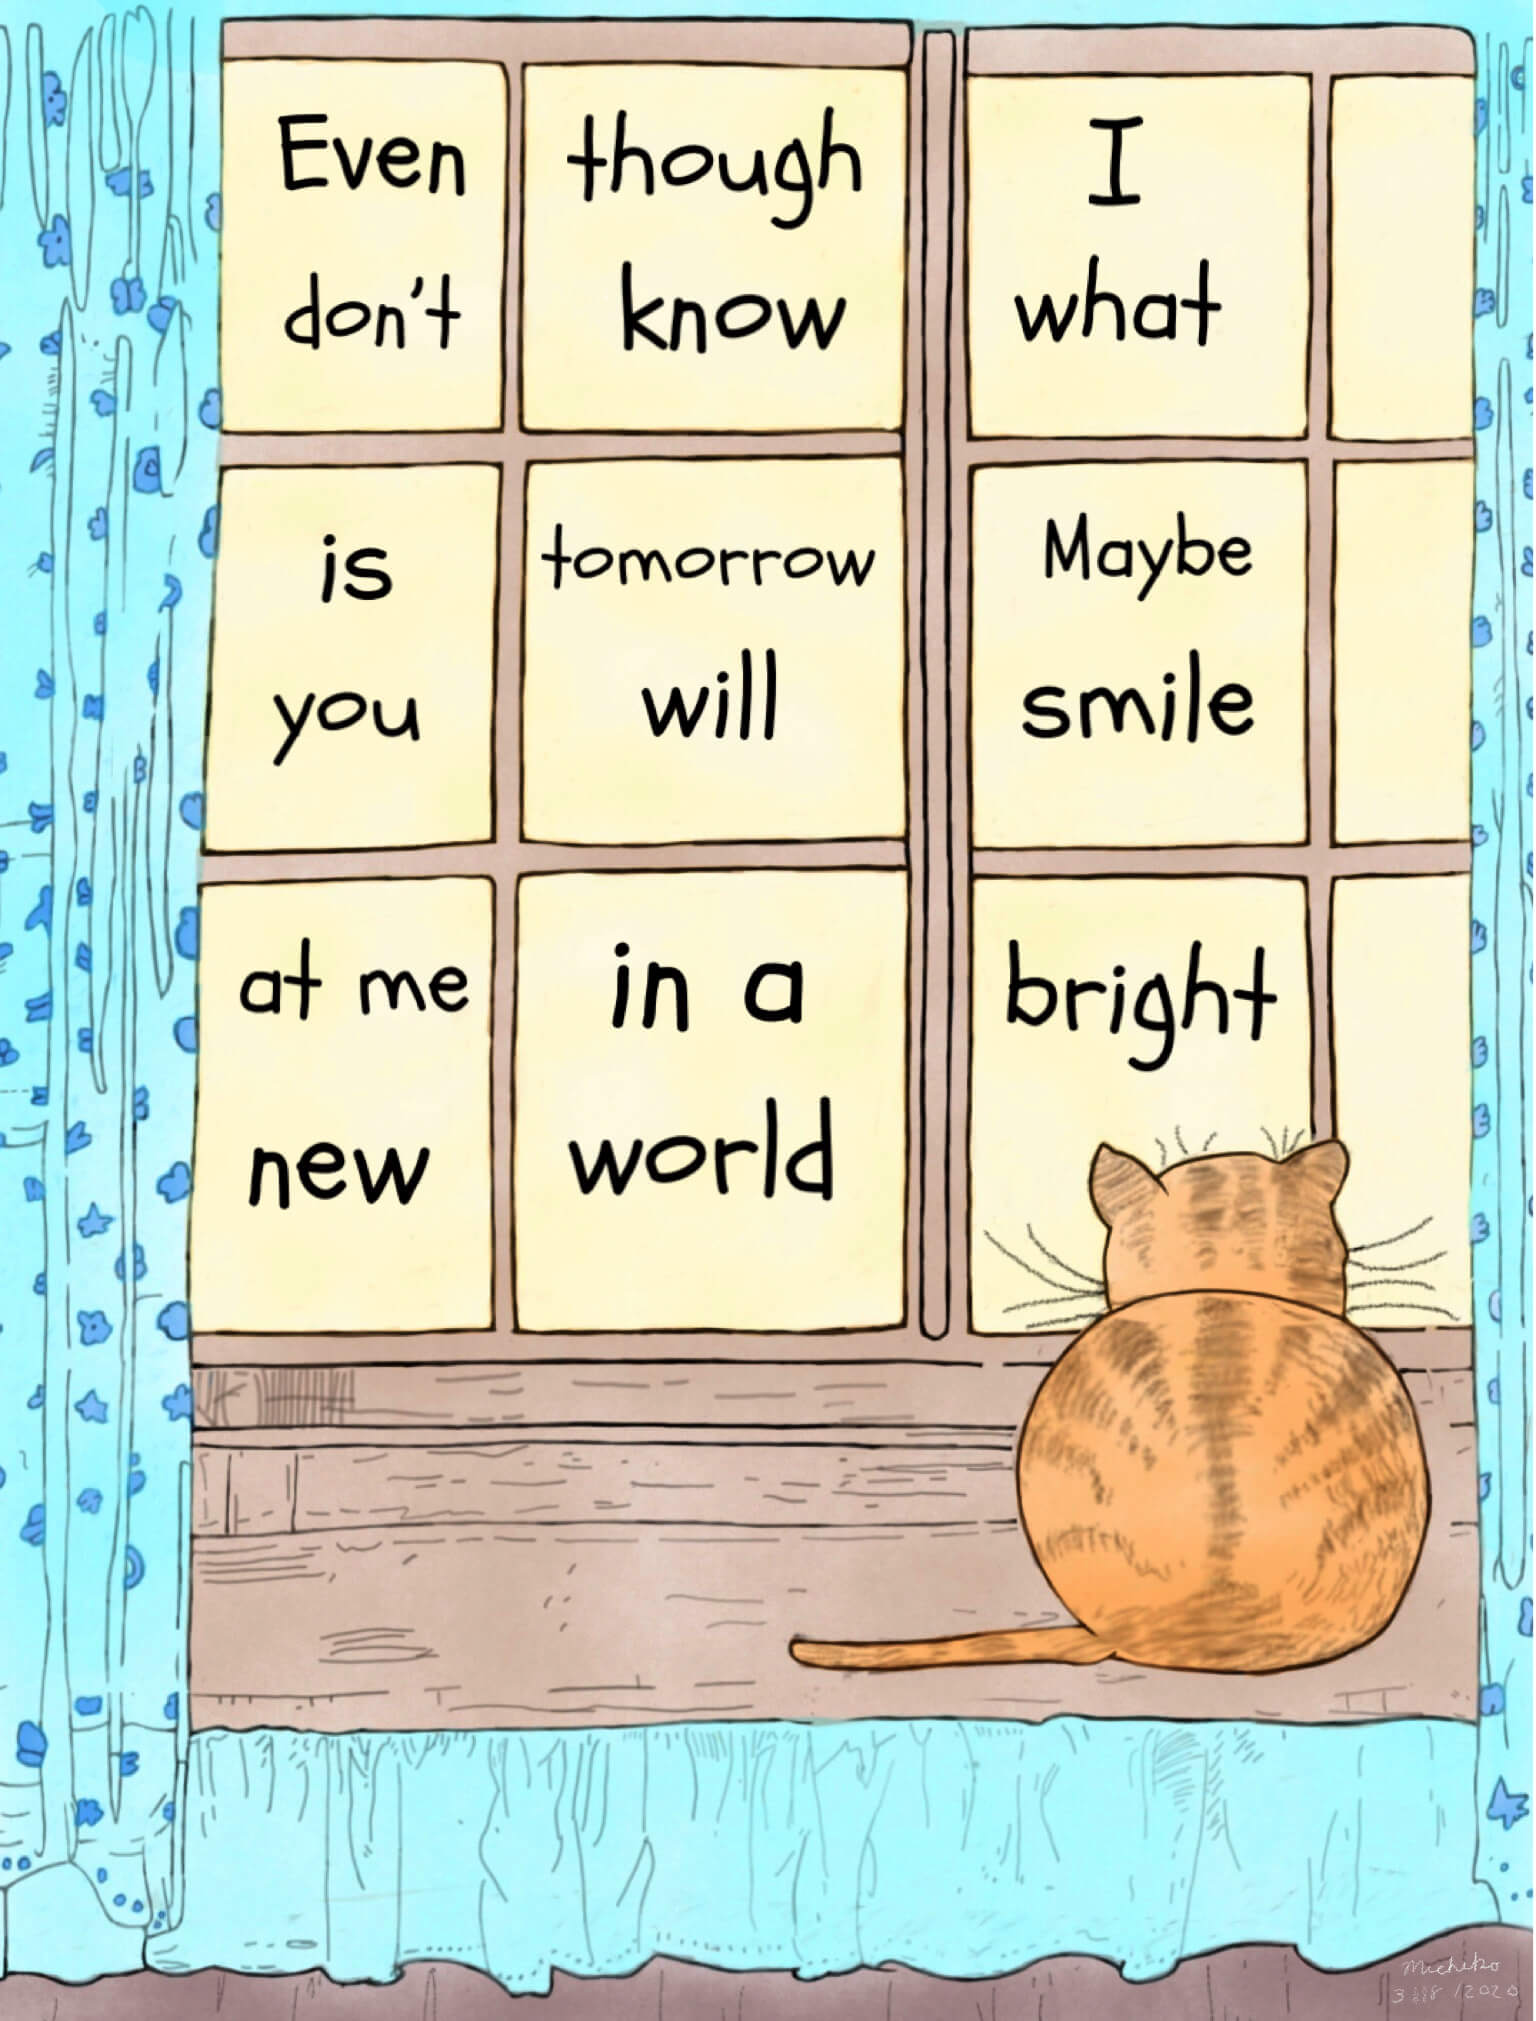 Looking forward to a bright new world